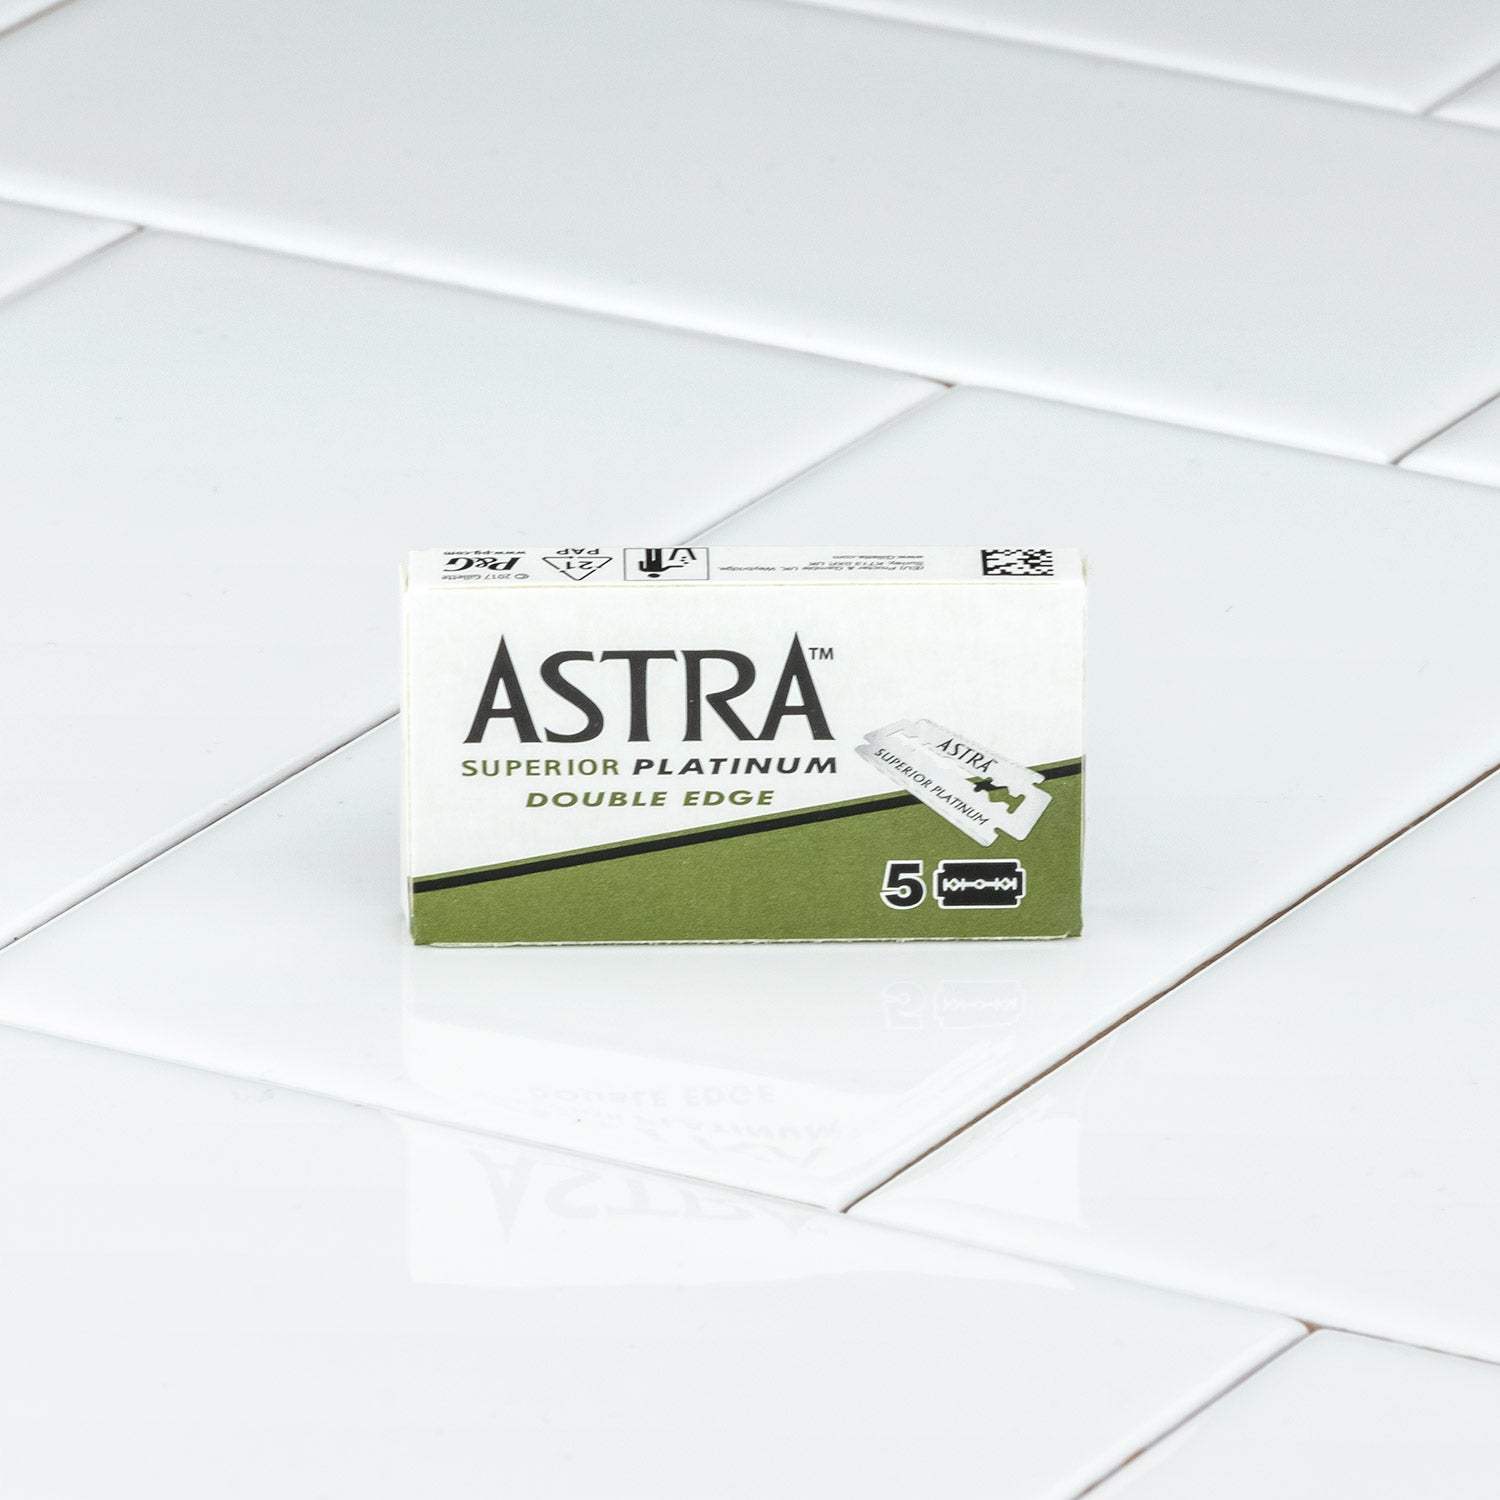 Astra Platinum Double Edge Razor Blades 1 Pack of 5 Blades